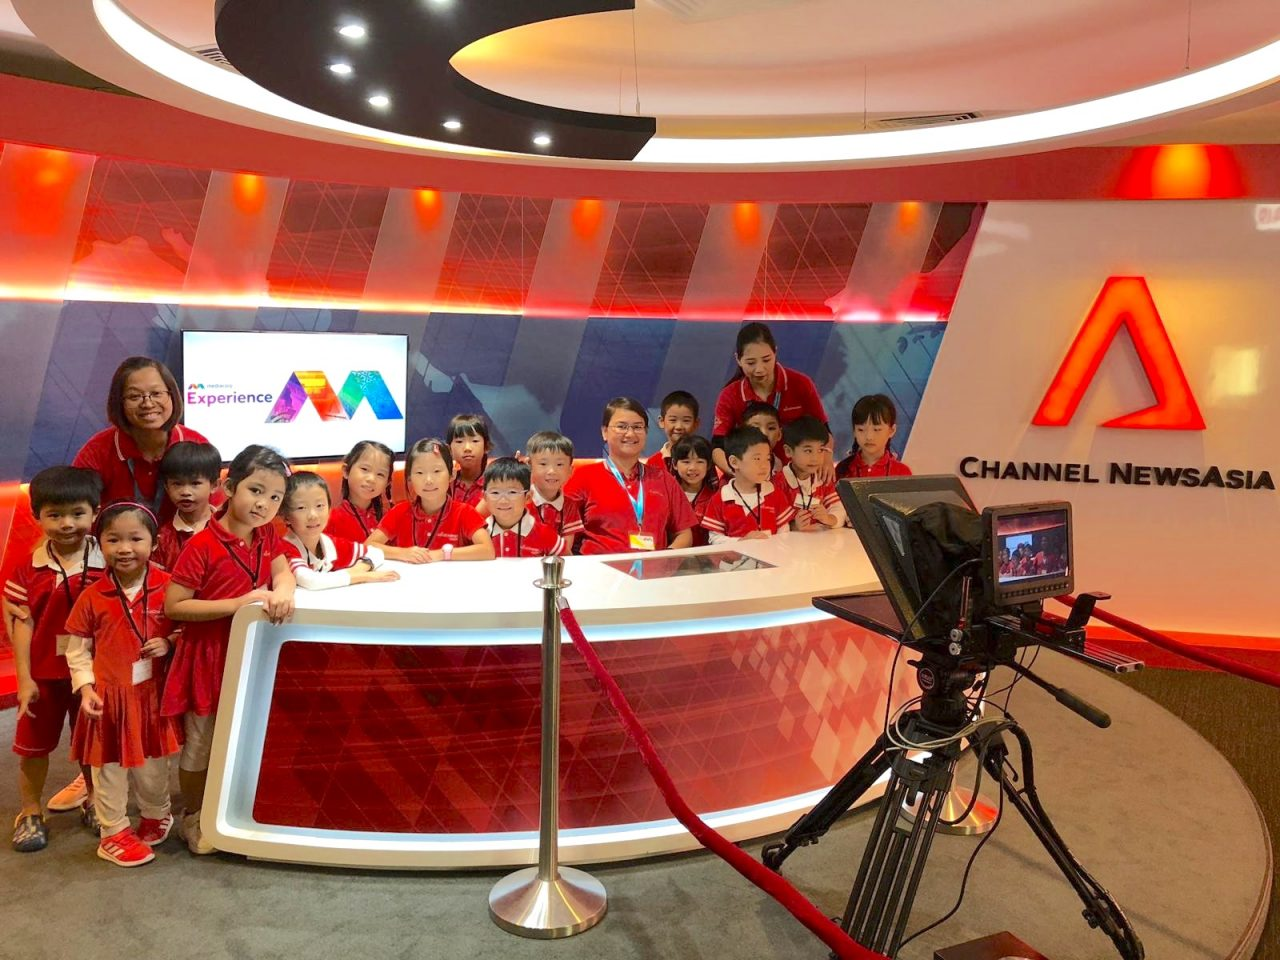 https://s3-ap-southeast-1.amazonaws.com/mindchamps-prod-wp/wp-content/uploads/2019/07/16225900/TPY-excursion-to-MediaCorp_3-1-1280x960.jpg